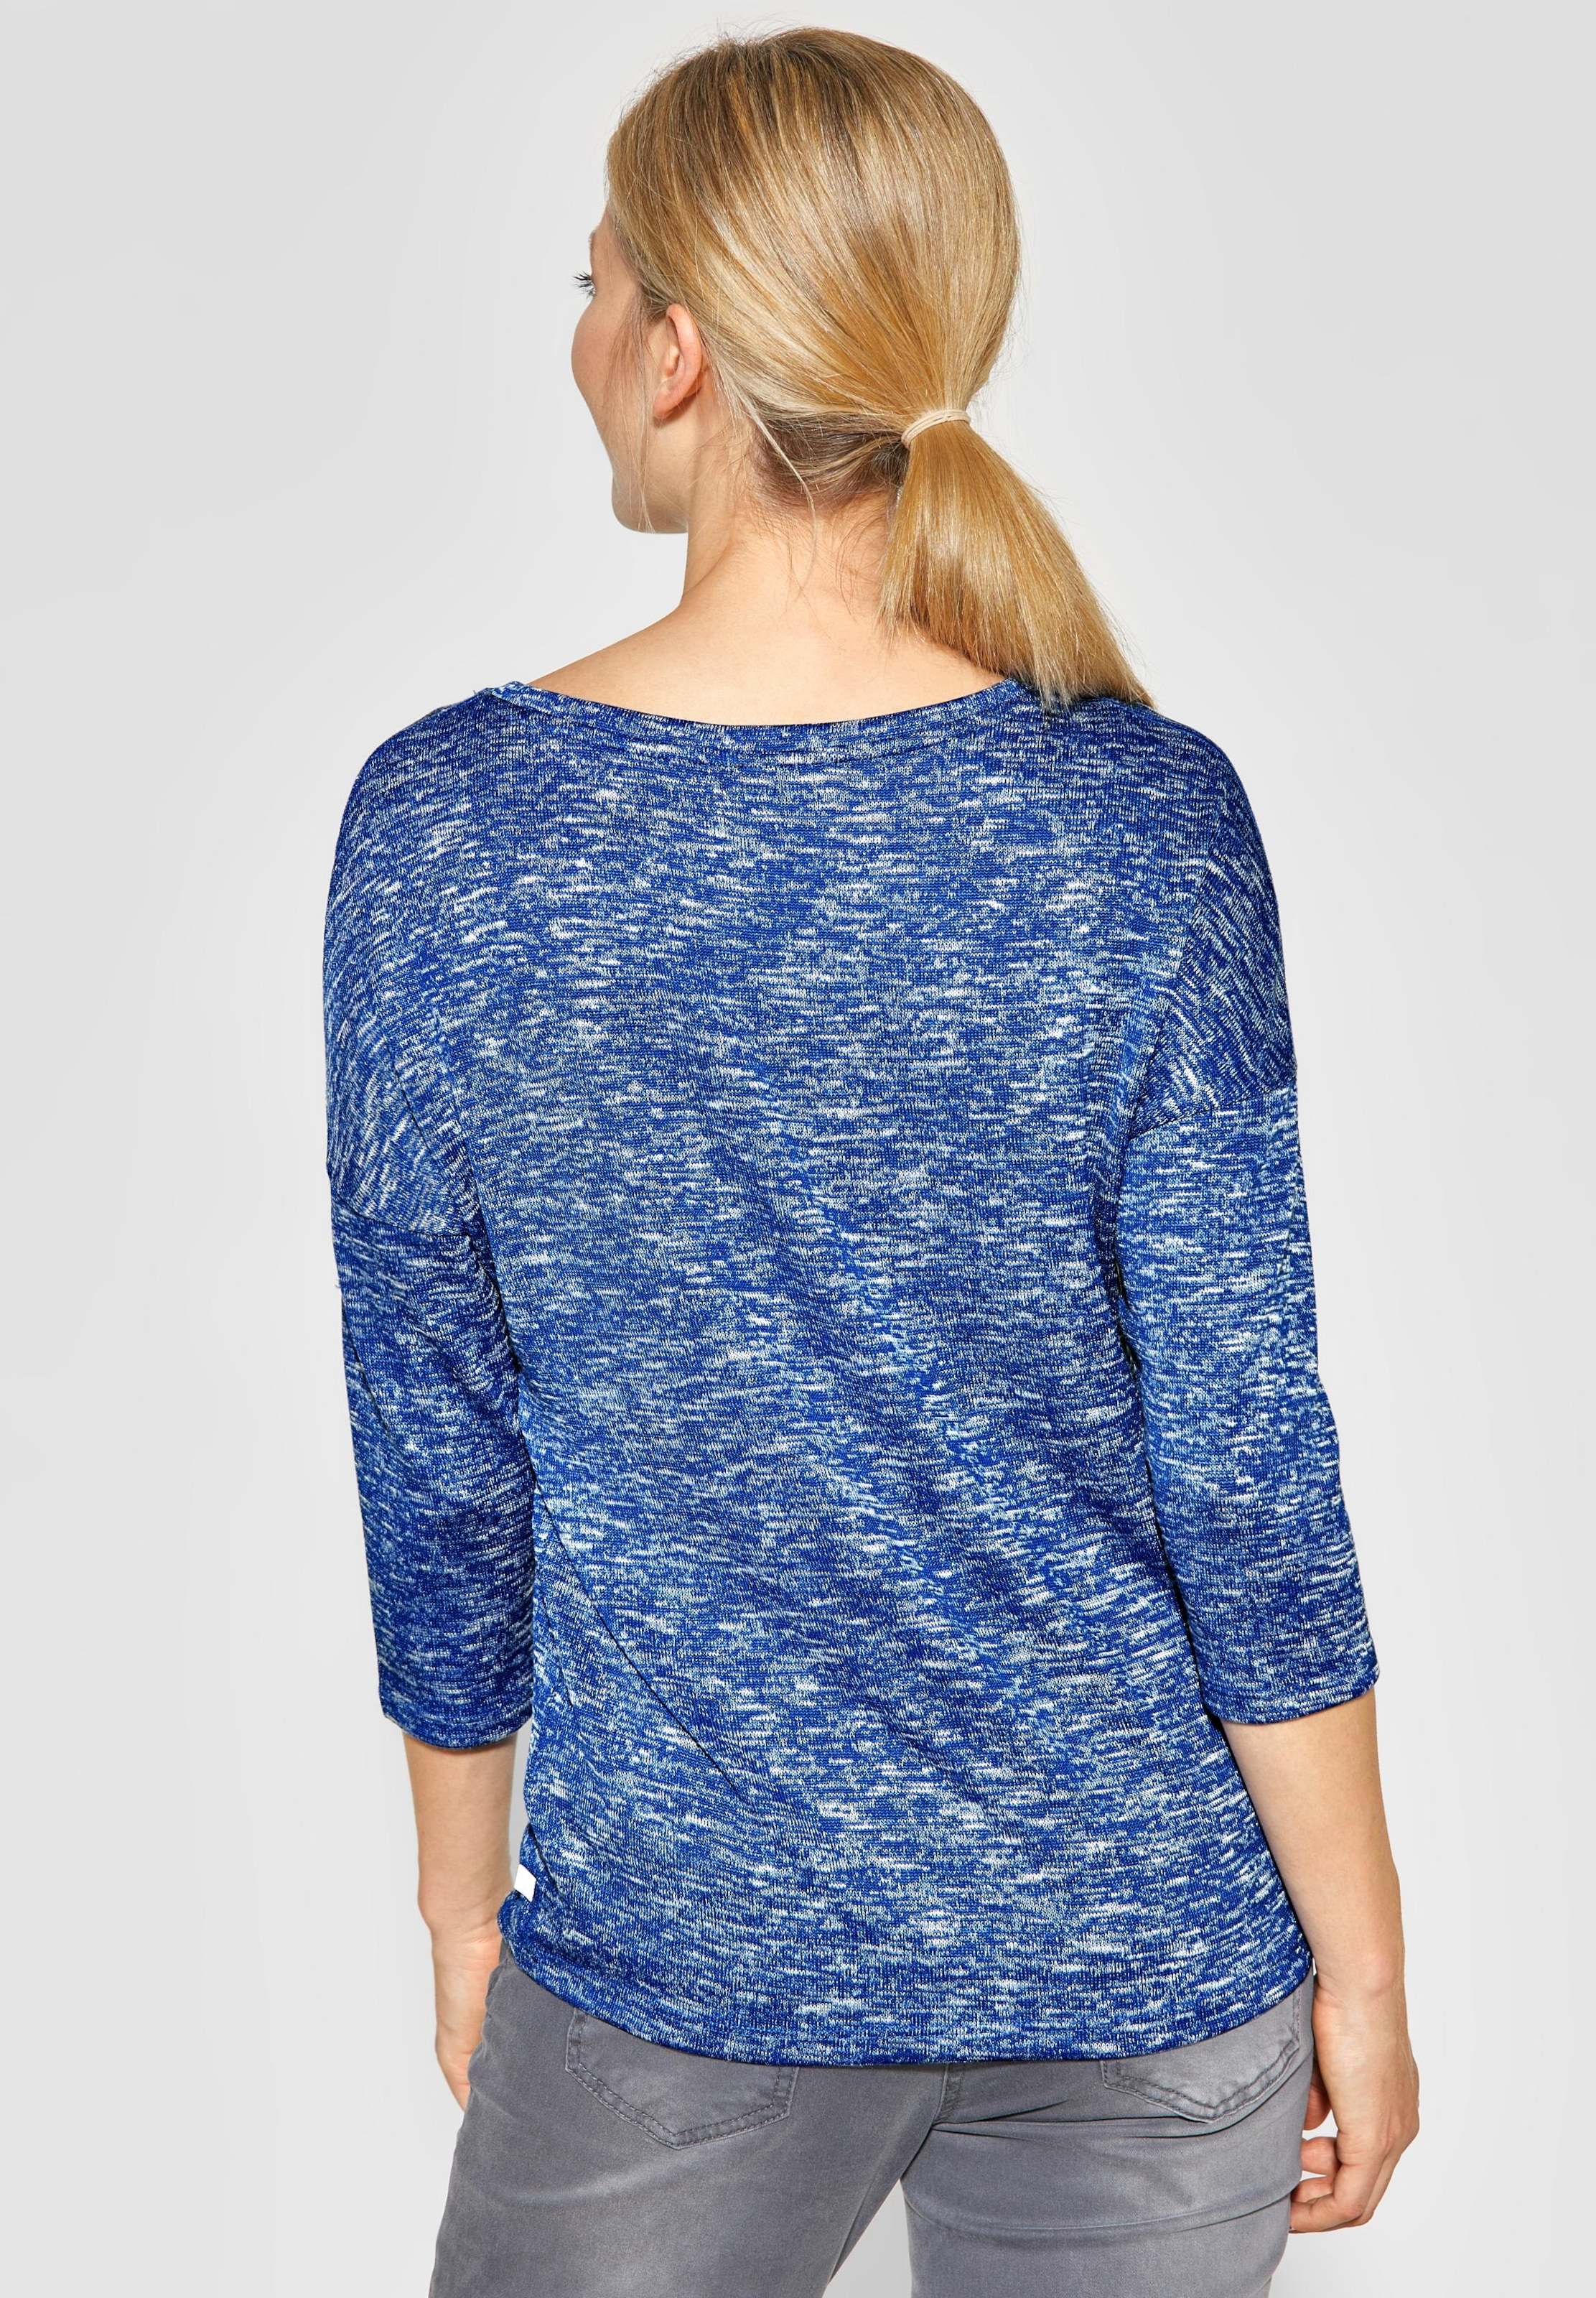 Cecil Cecil Shirt Blaumeliert In In Cecil In Blaumeliert Shirt Shirt Blaumeliert WYED2H9I